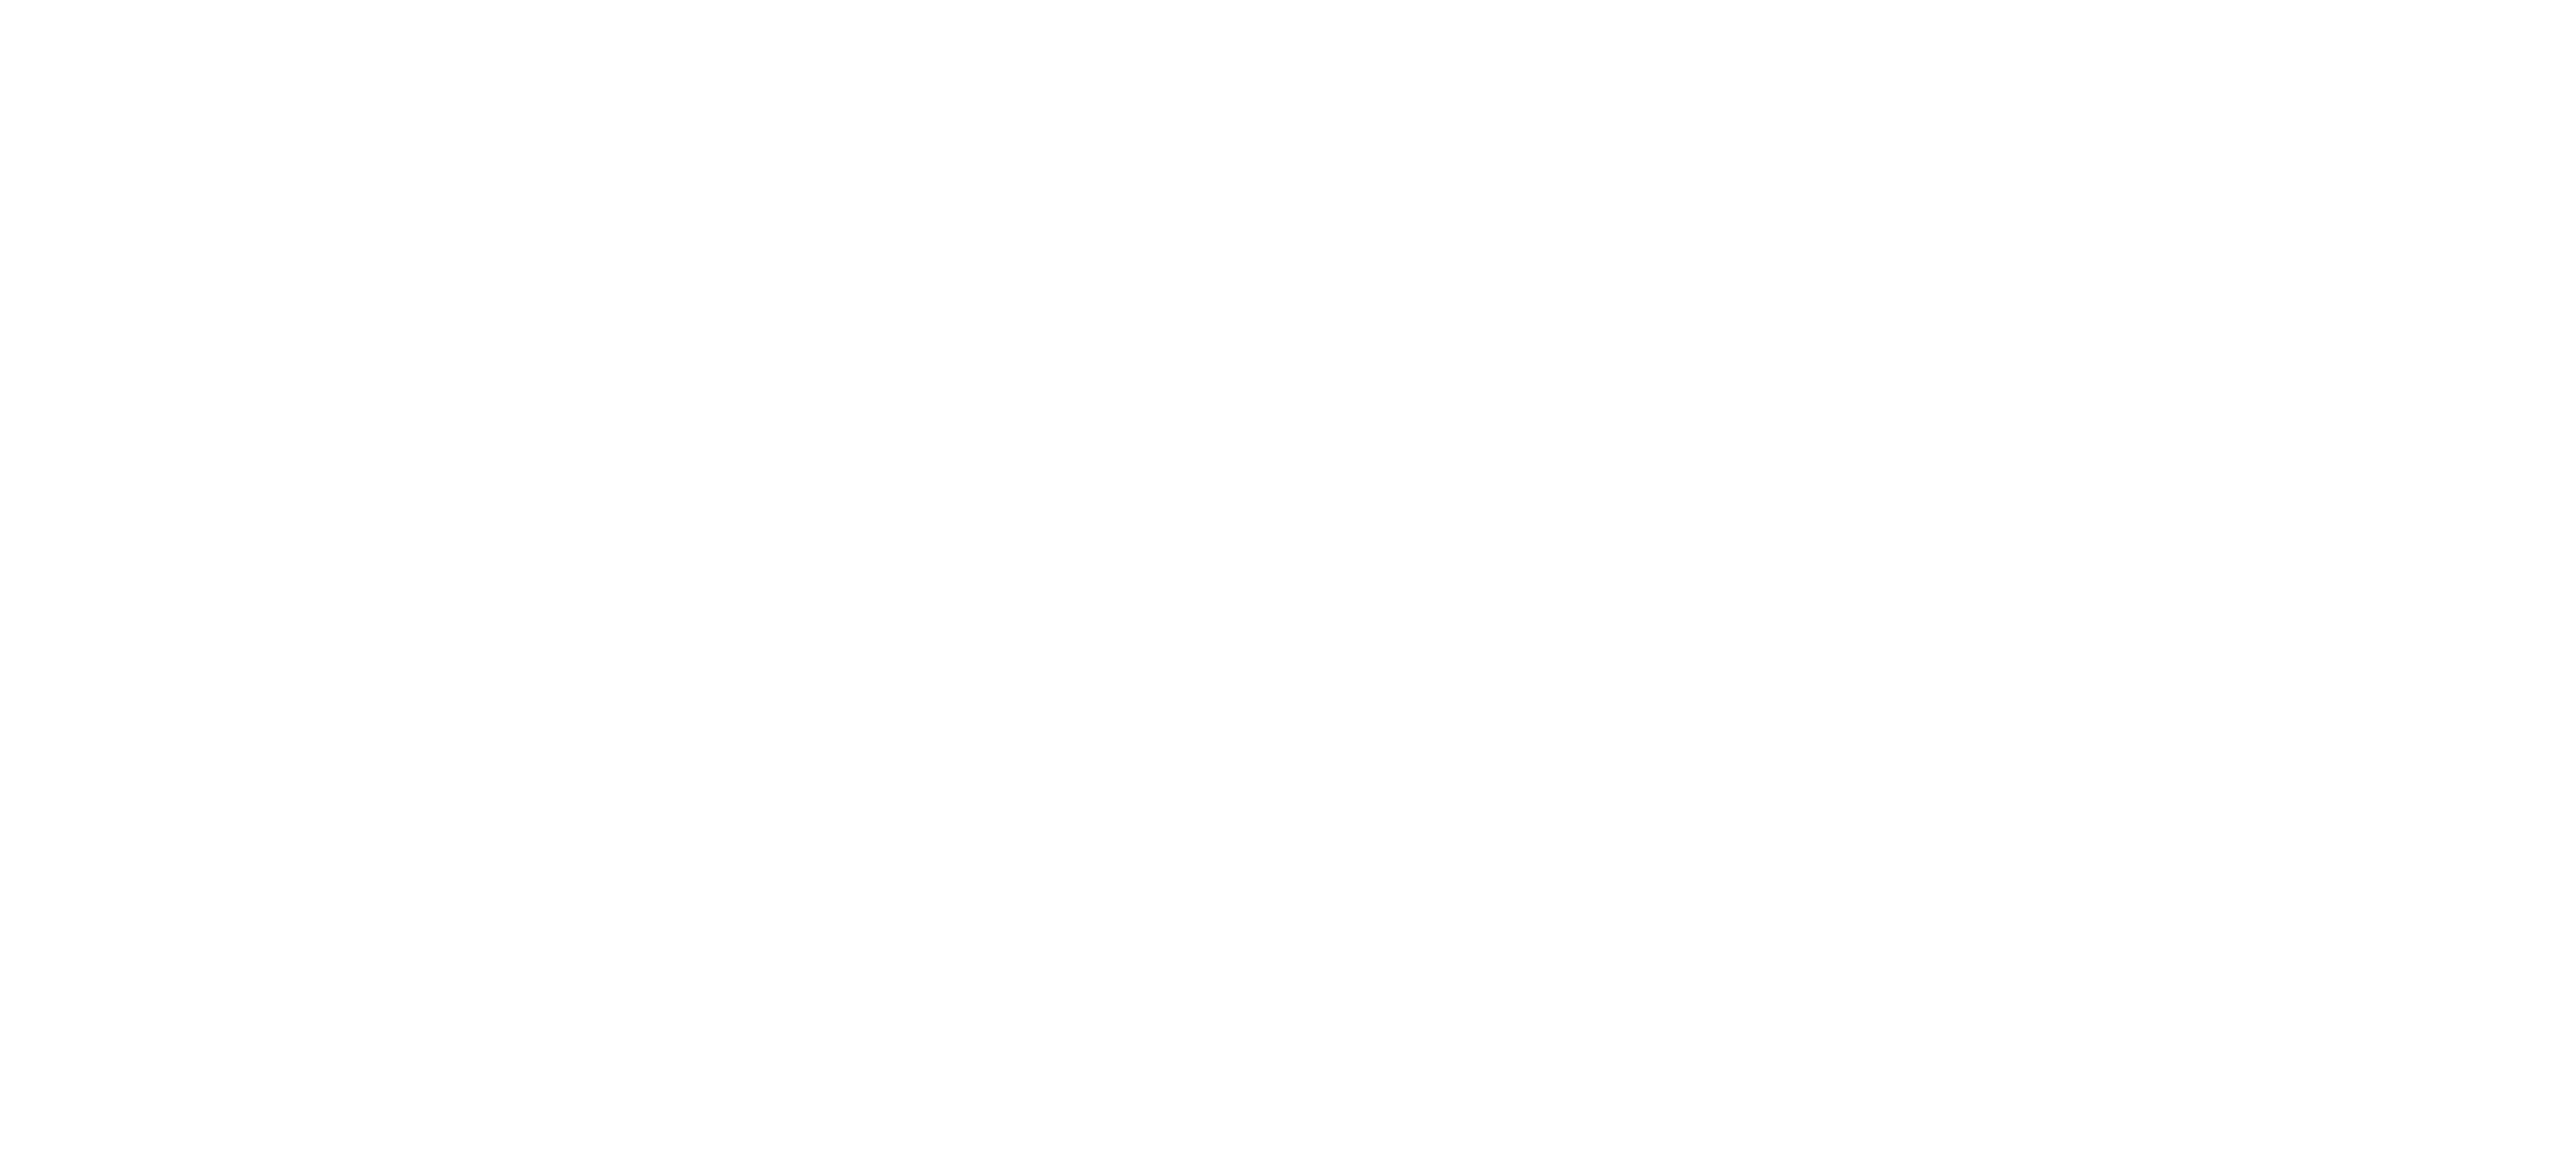 Pacific Airshow